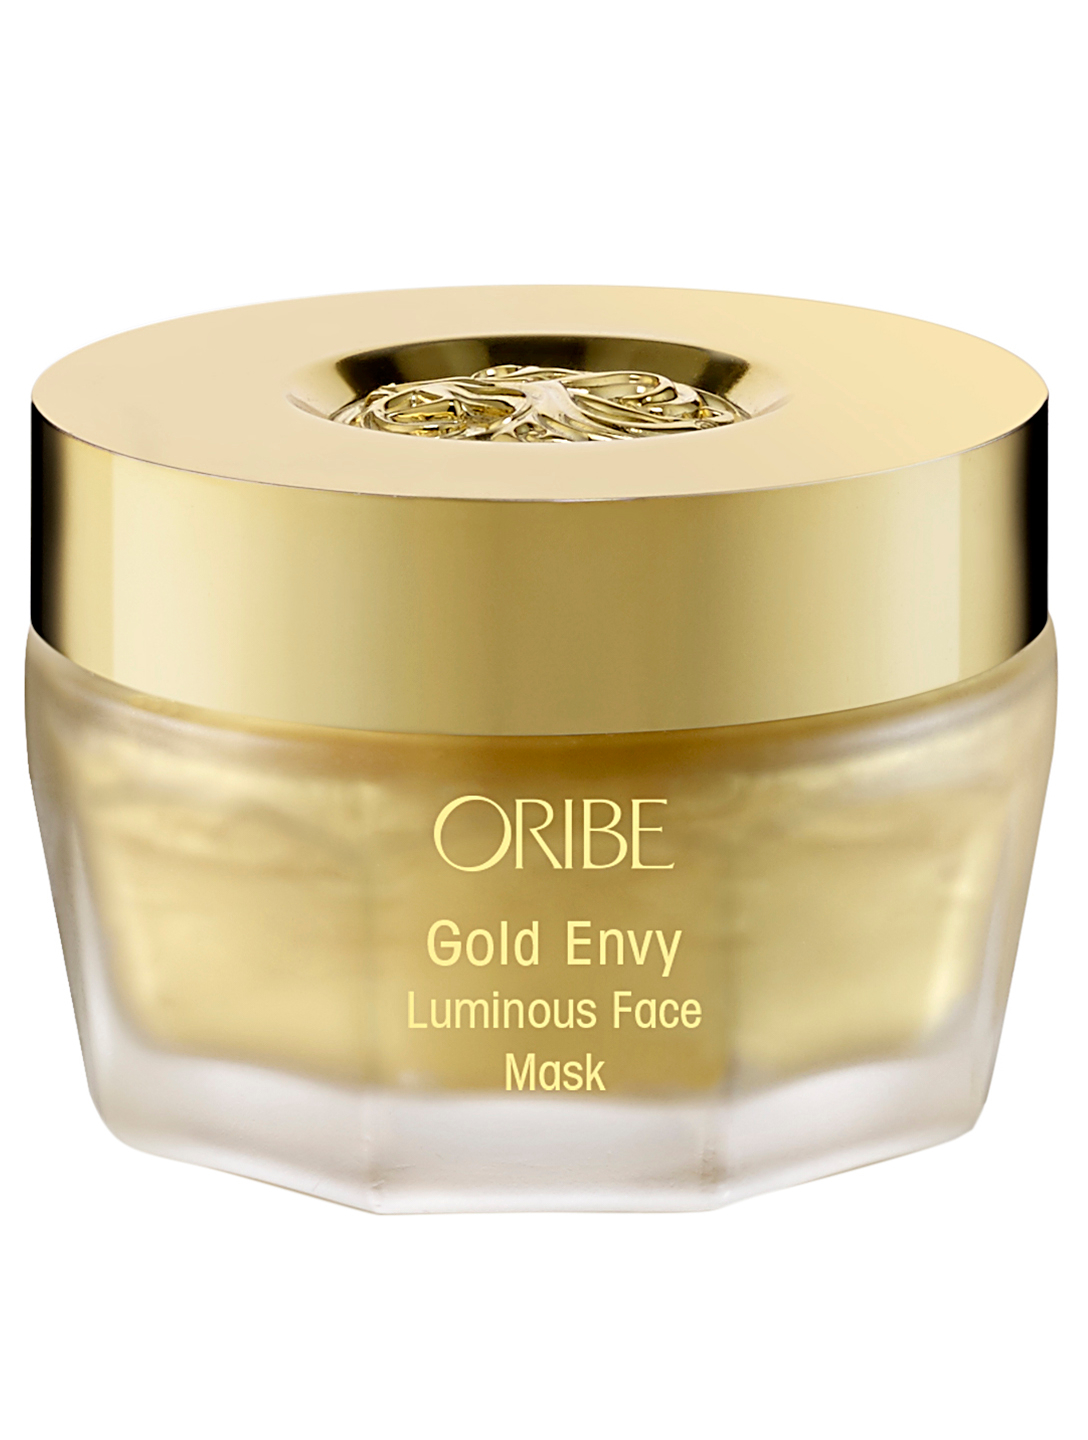 ORIBE Gold Envy Luminous Face Mask Beauty